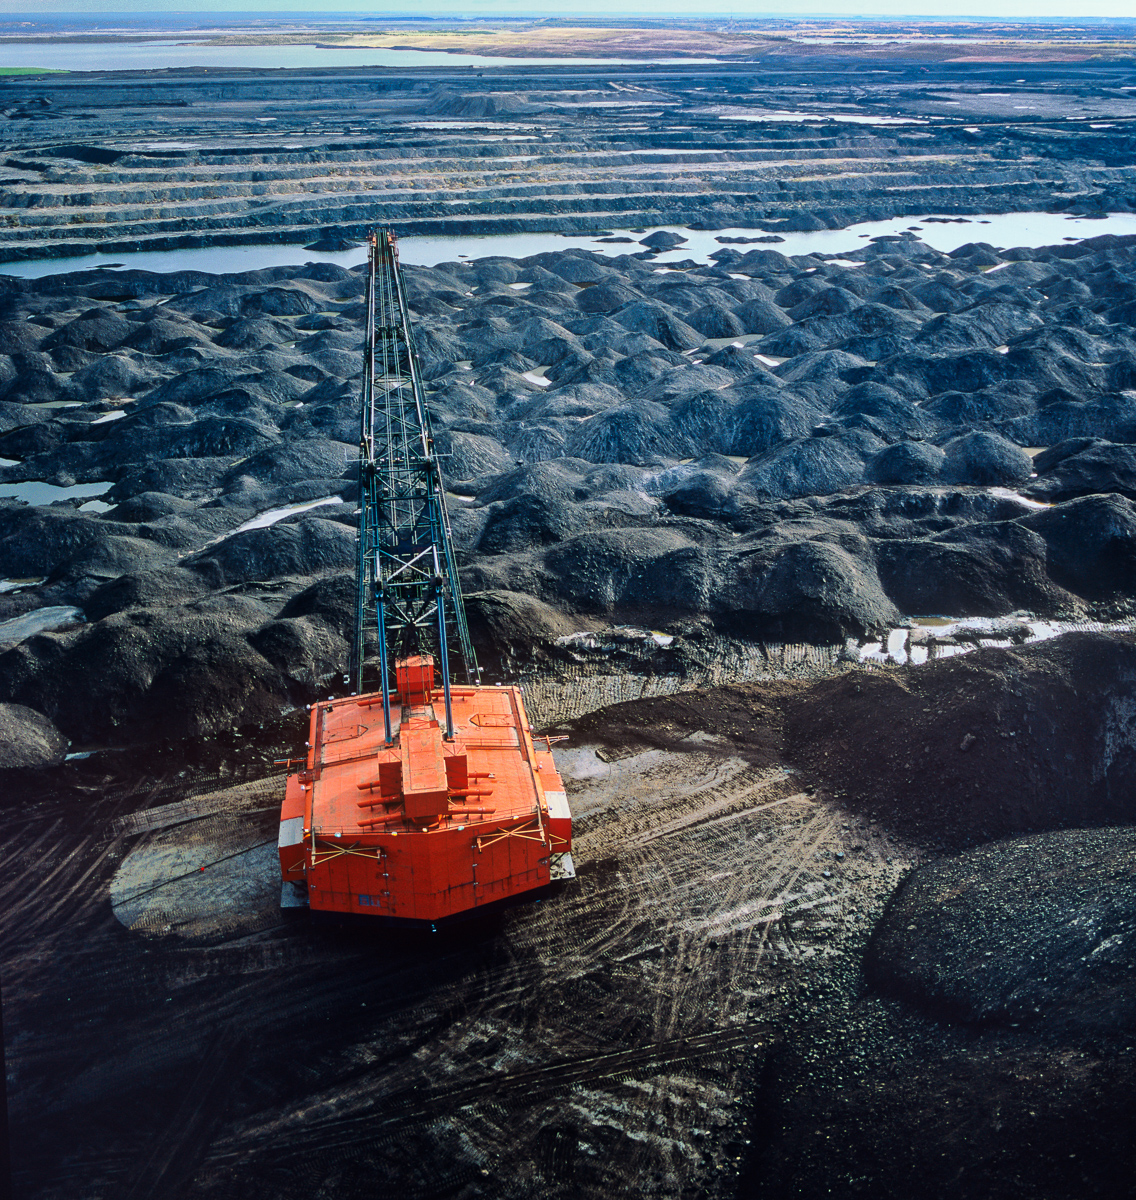 At the edge of an 80-meter deep mine, a massive tar sands machine. The mines, machinery, and trucks of the Alberta Tar Sands were the inspiration for Avatar's Edmonton-born art director's vision of the mining operation on Pandora.